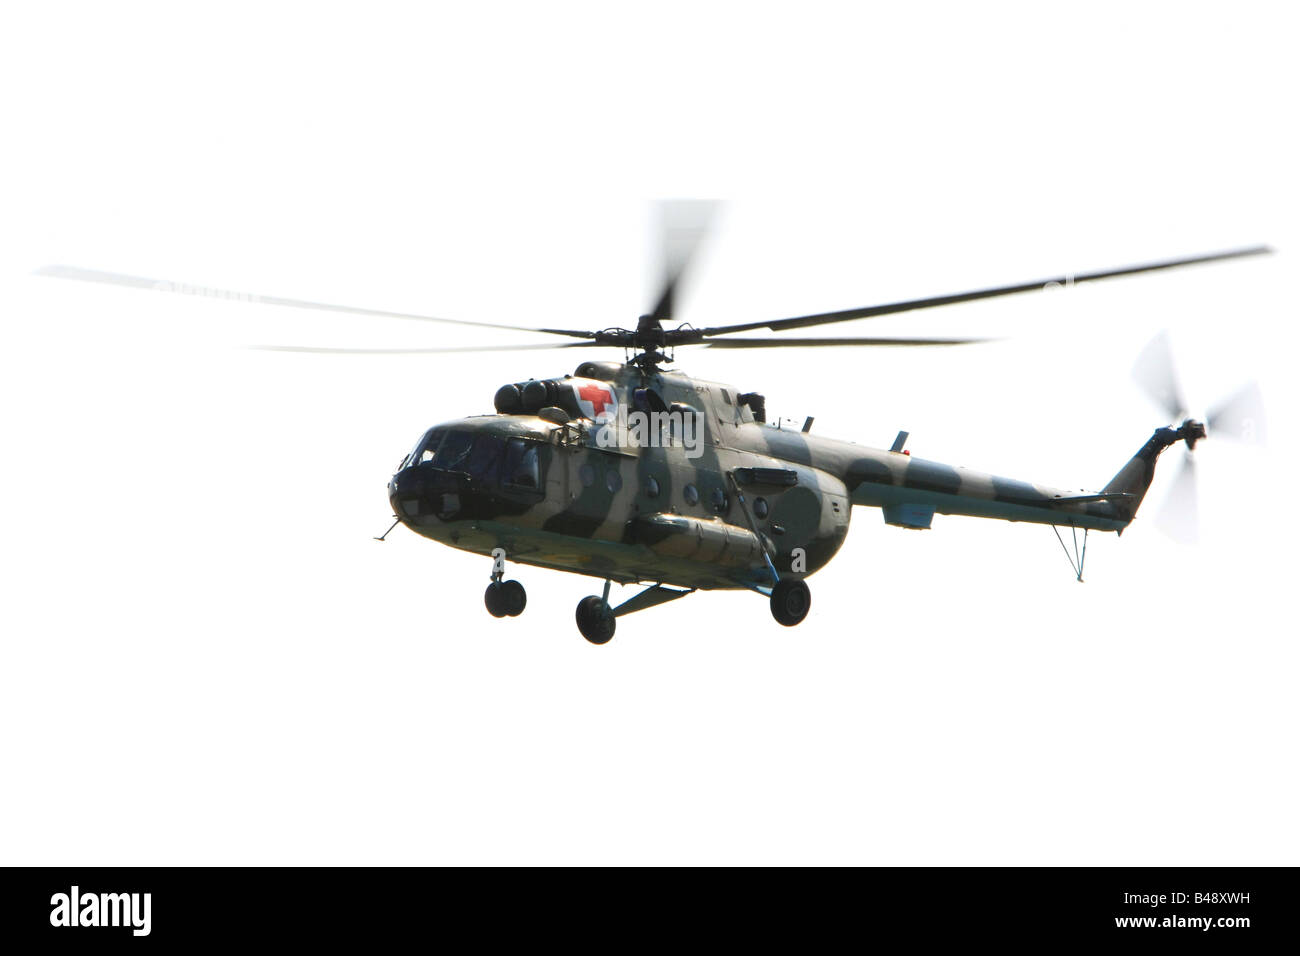 Flying military helicopter isolated on white - Stock Image